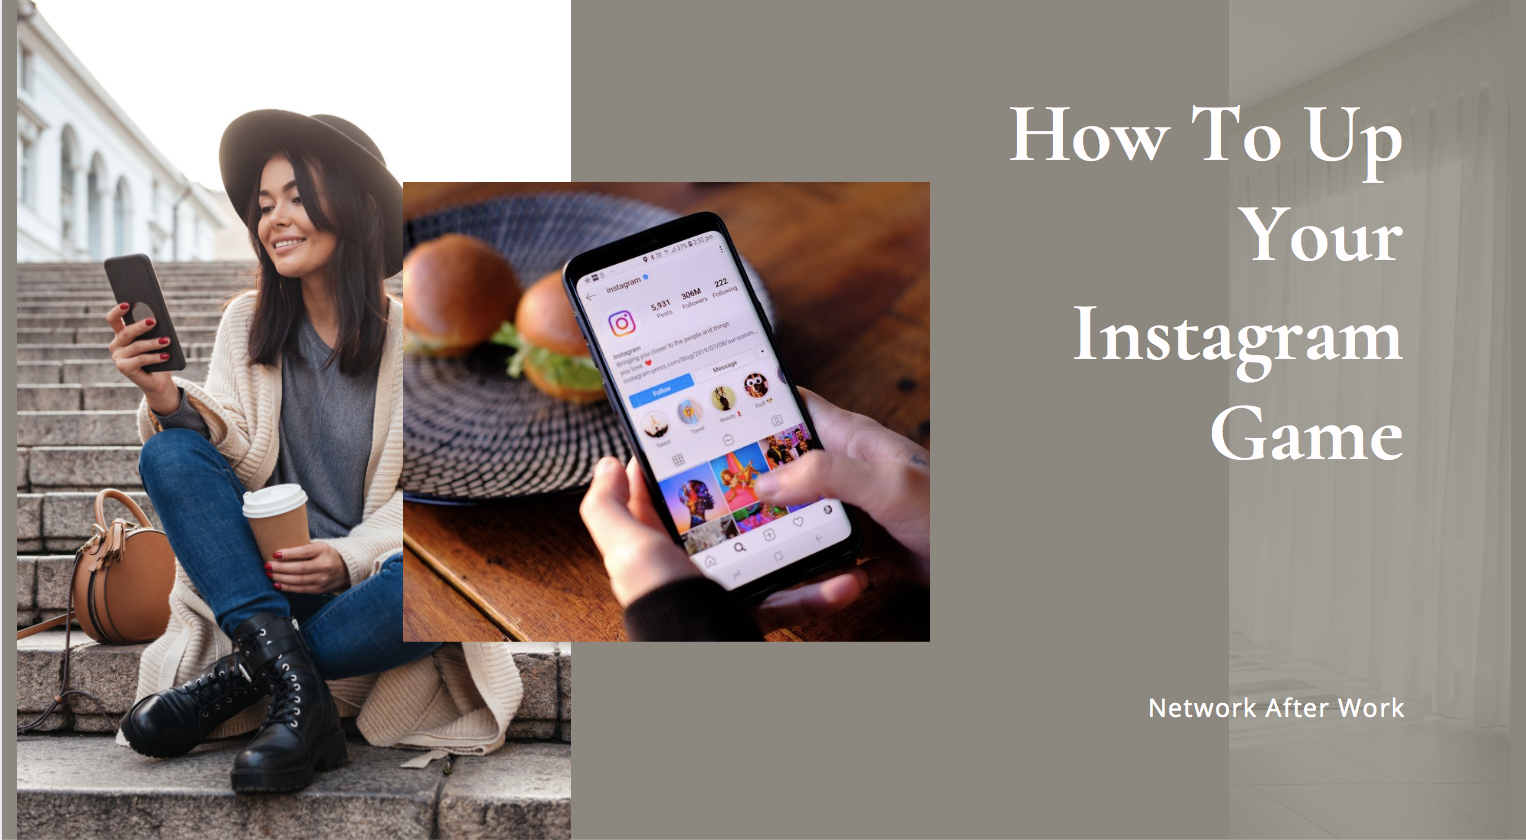 How To Up Your Instagram Game